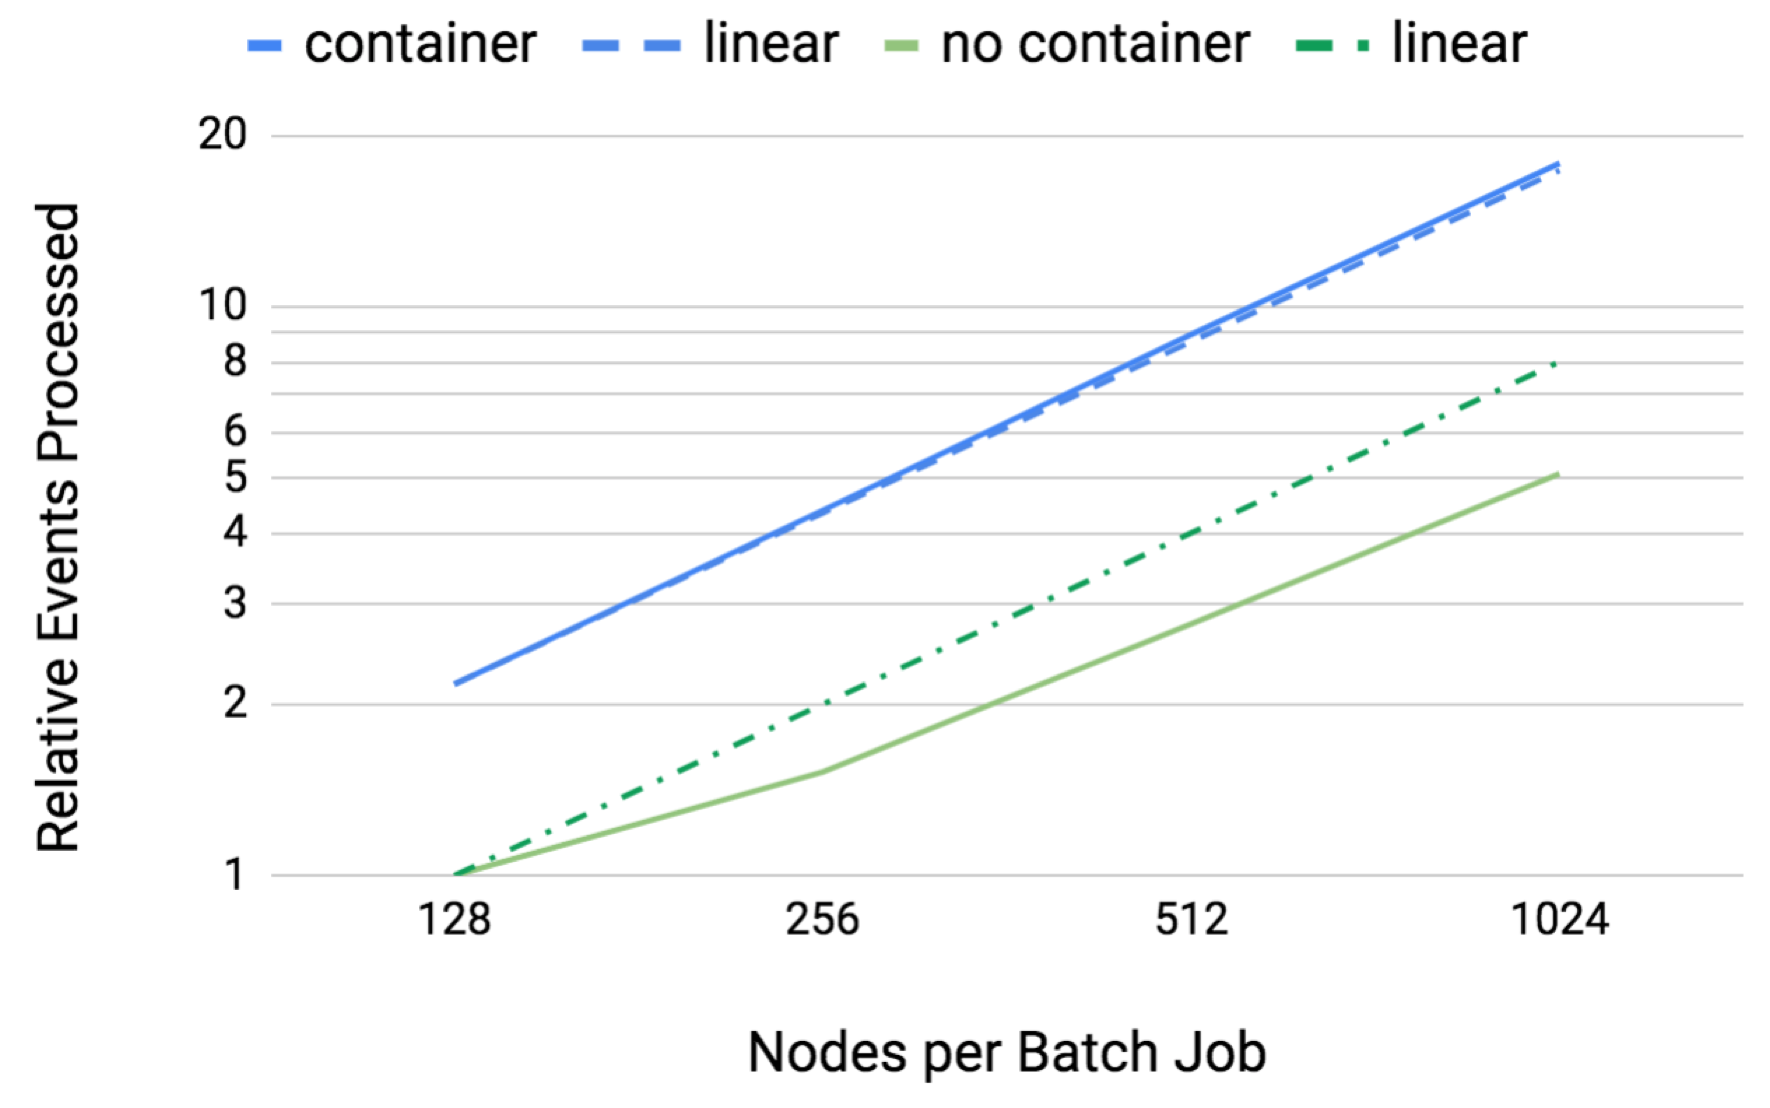 This plot shows the number of events ATLAS events simulated (solid lines) with and without containerization. Linear scaling is shown (dotted lines) for reference.